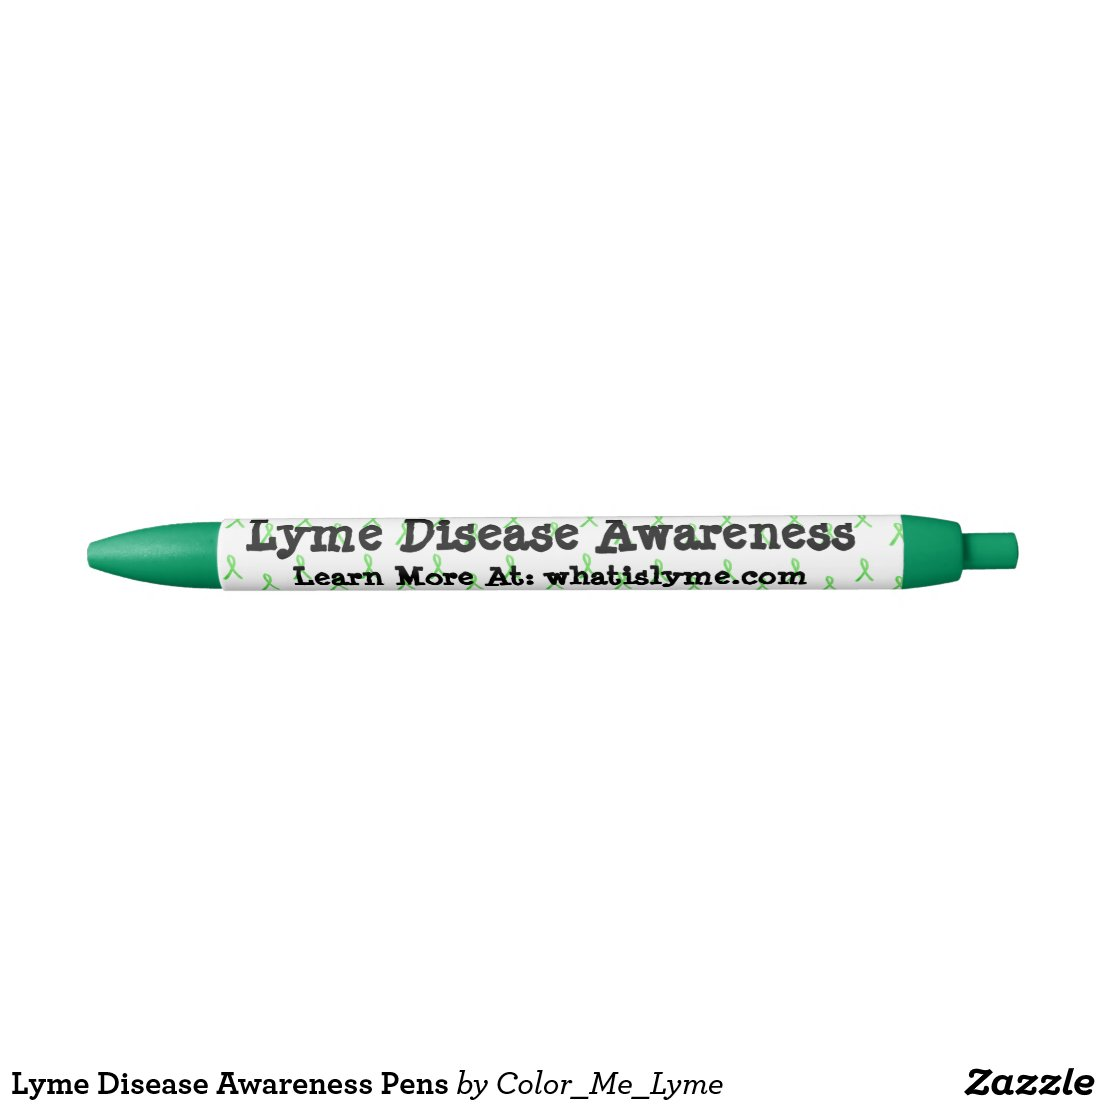 Lyme Disease Awareness Pens